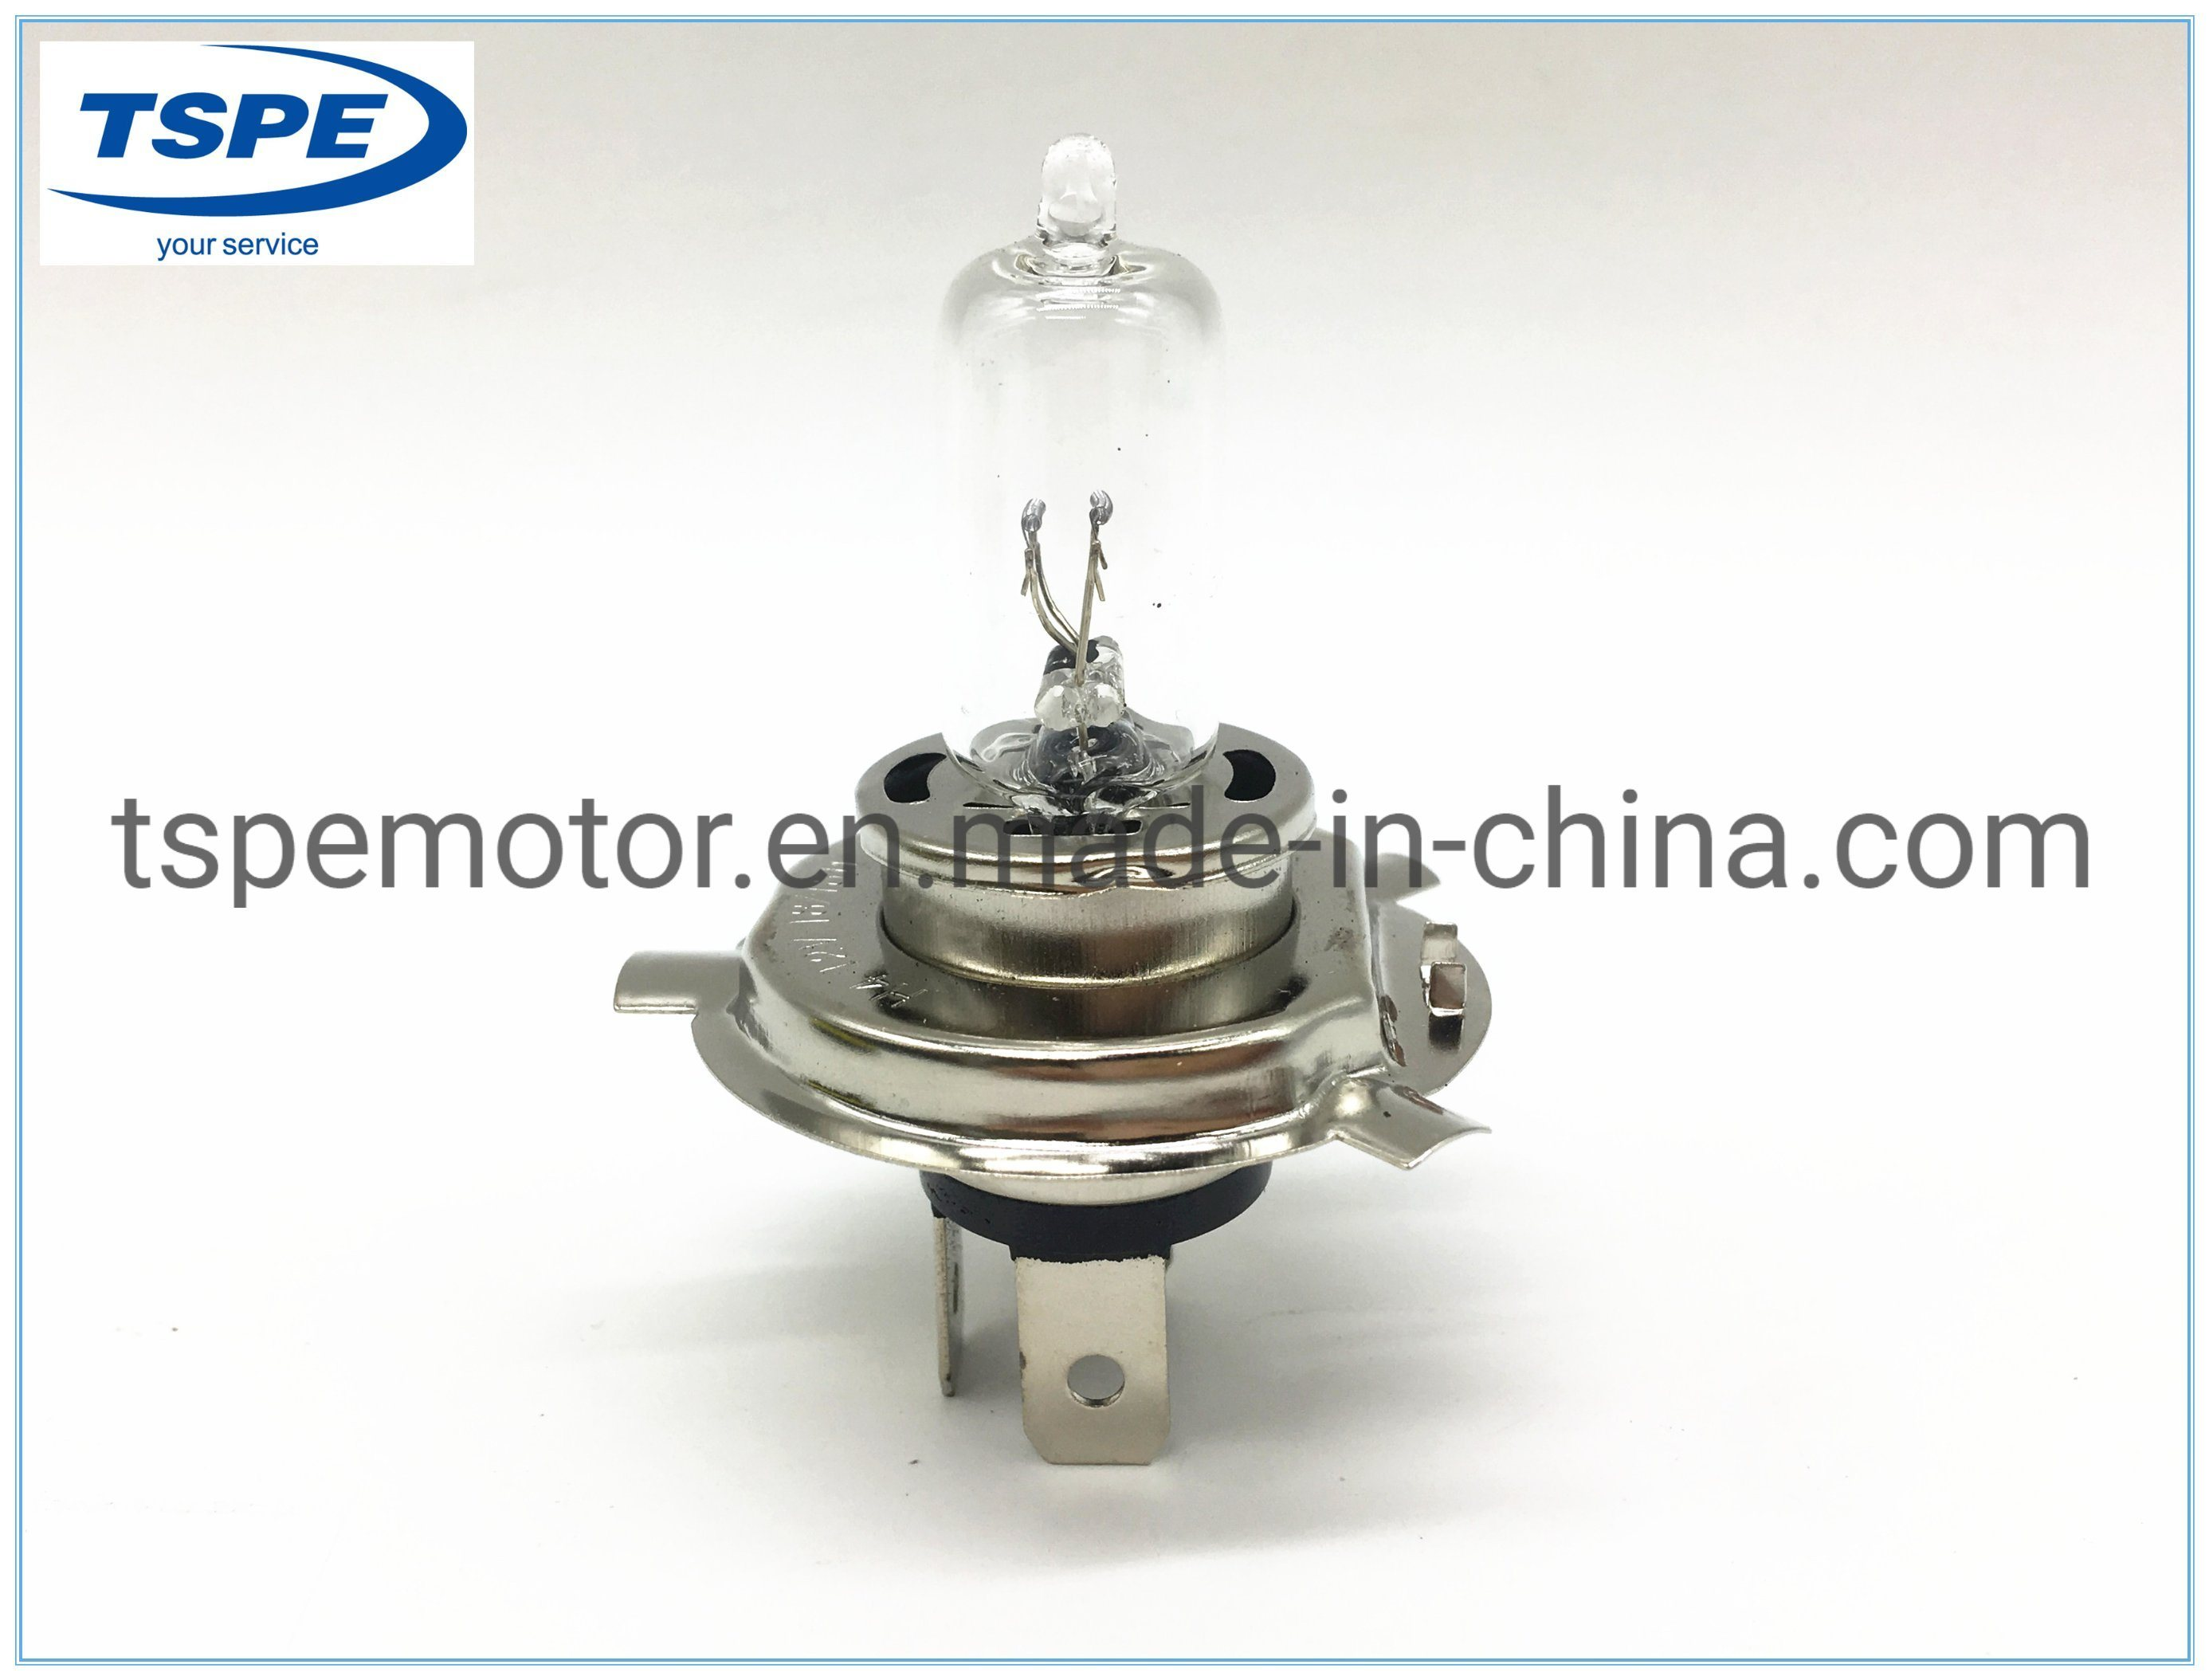 Chinese Scooter 12V 18W//18W Head light bulb H Base